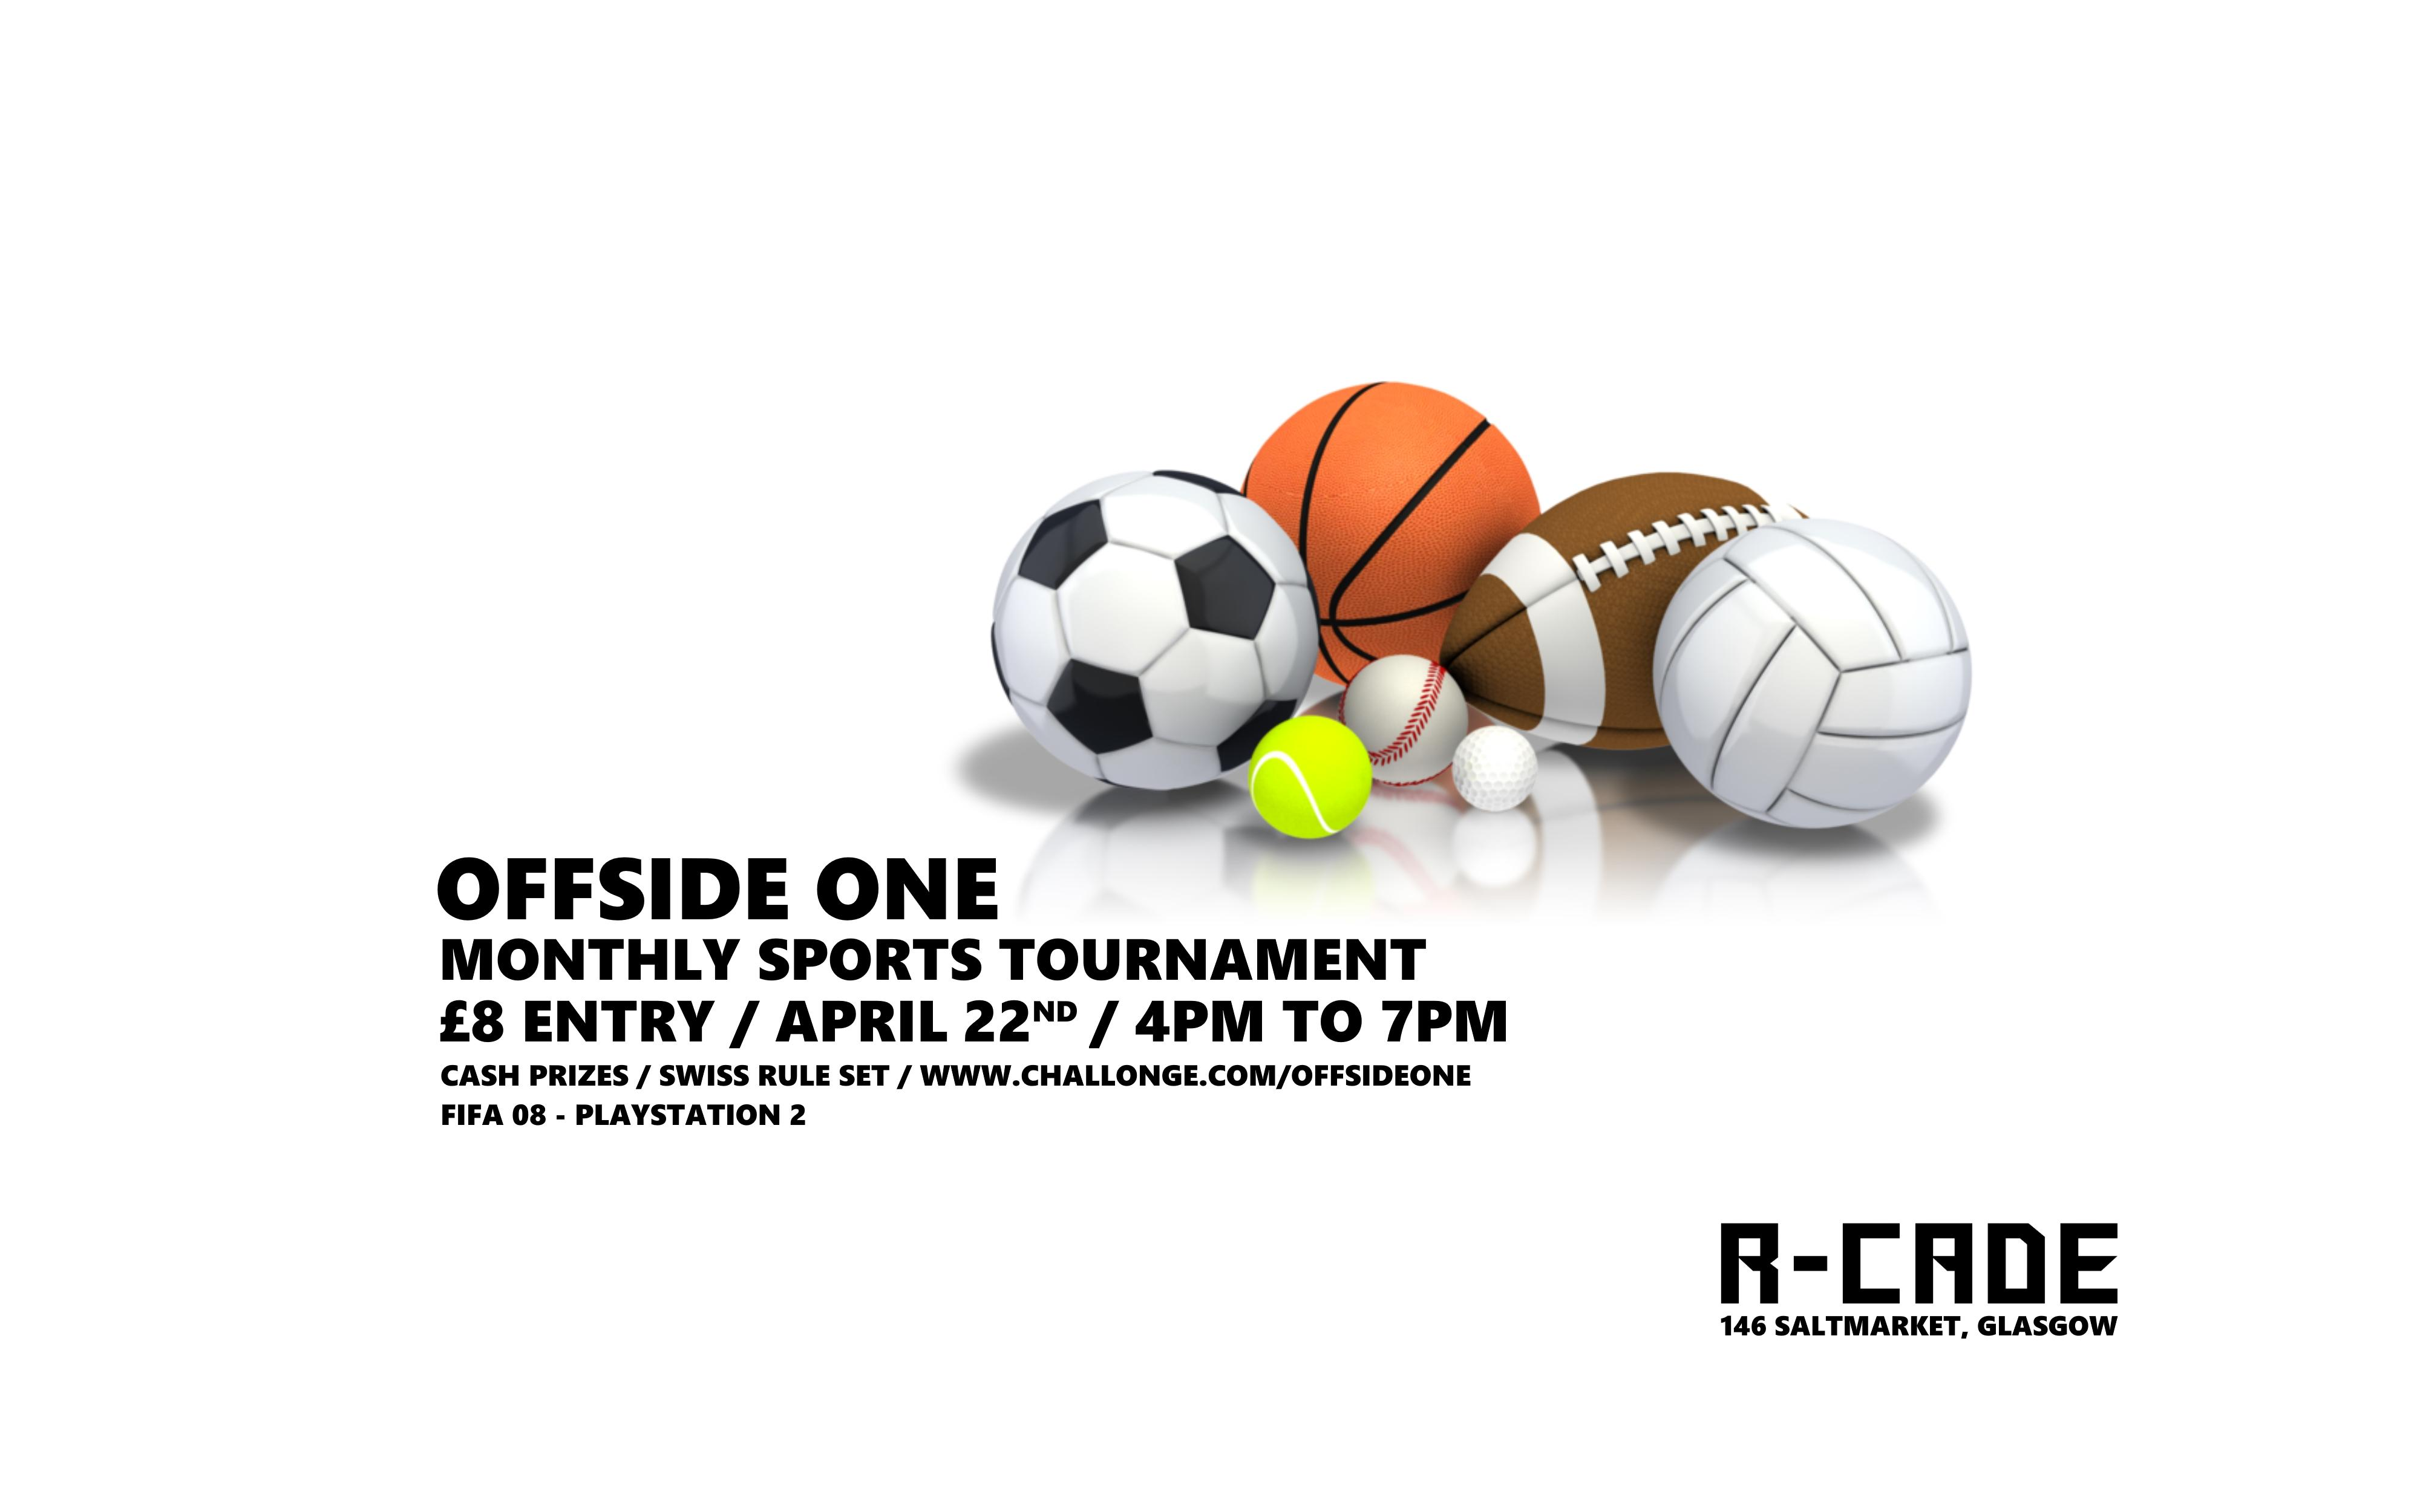 Offside One - FIFA 08 Tournament